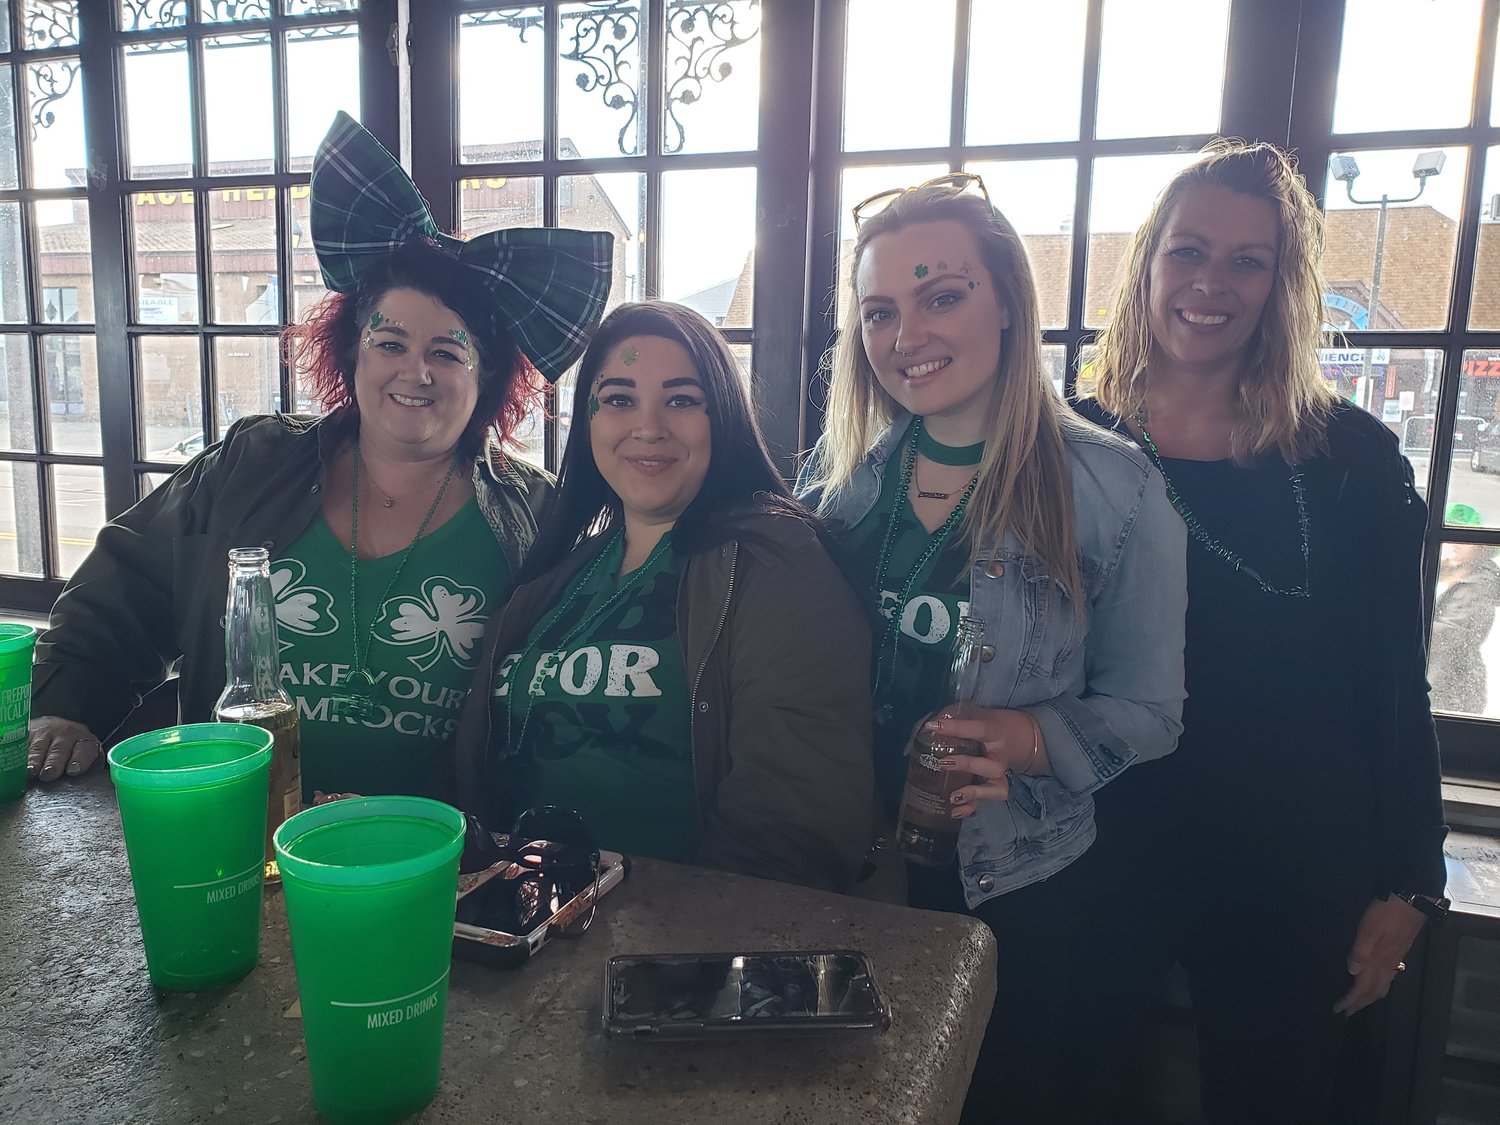 Starting the party at Nawlins Seafood Company, girlfriends Leeanne Urquilla, left, of Wantagh, Alexandria Rumbea, of Wantagh, Georgianna Hunter, of Levittown, and Melissa Kinlo, of Copiague, left, took part in the pub crawl, which was full of leprechauns.